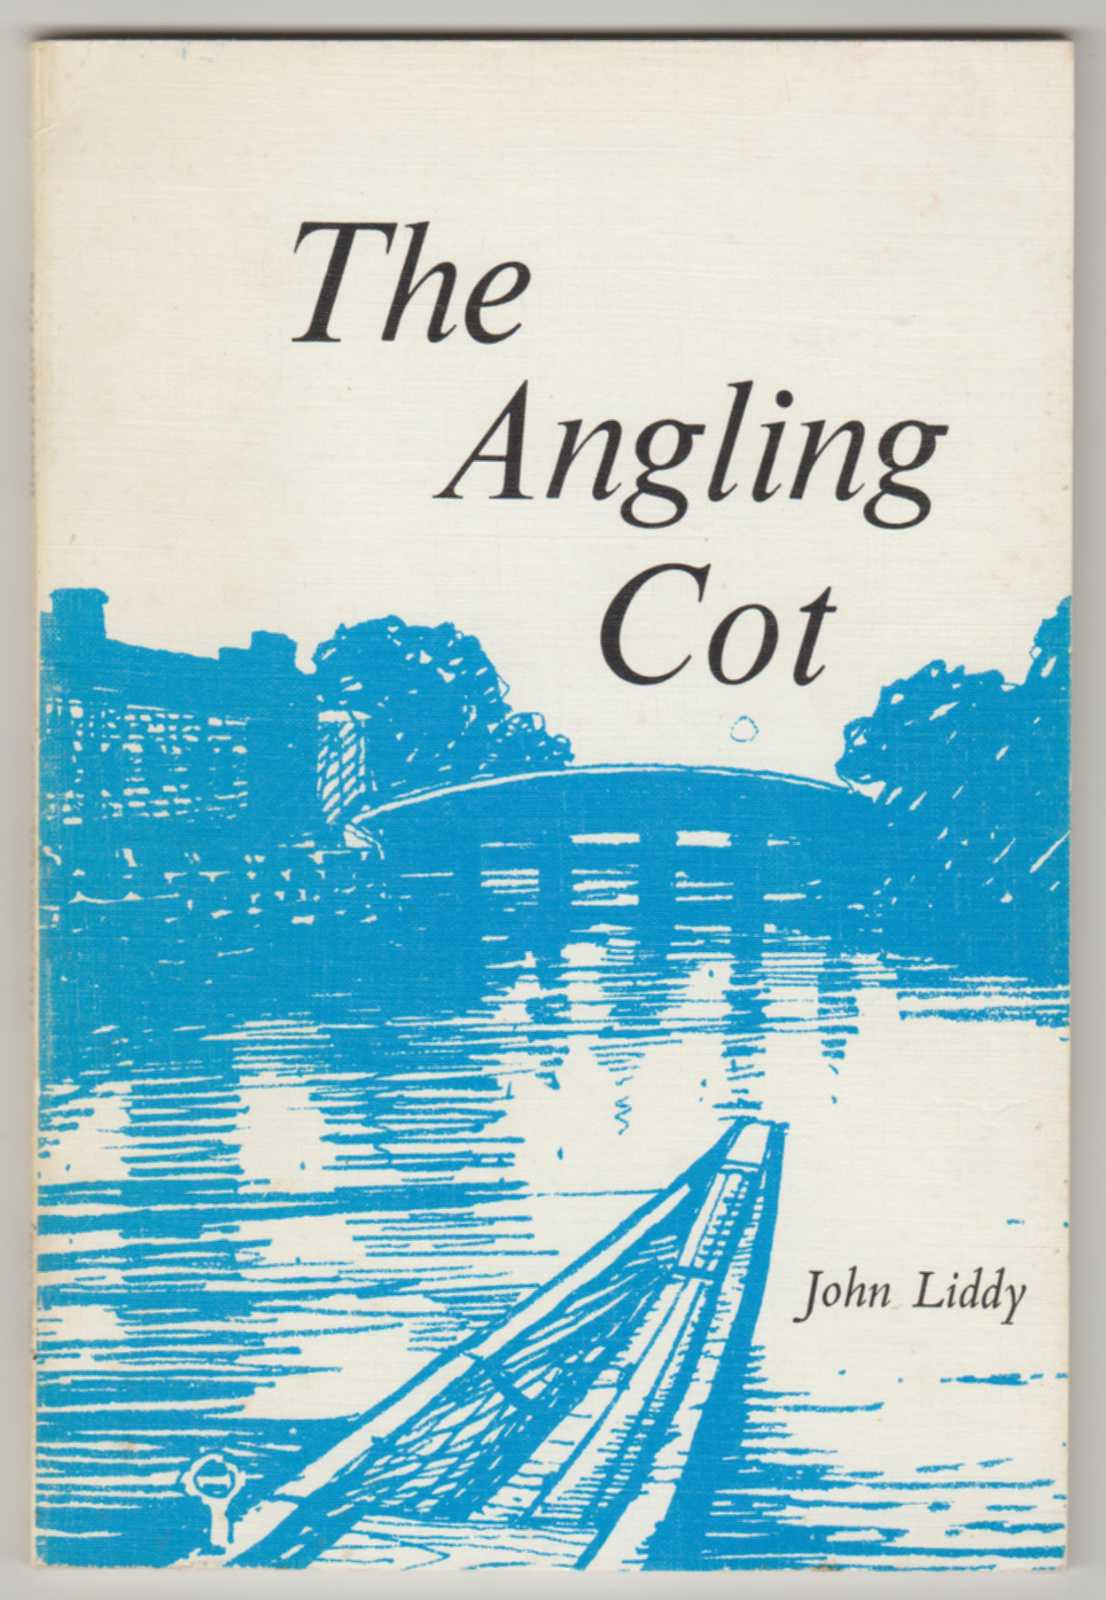 Image for THE ANGLING COT (Inscribed Copy)